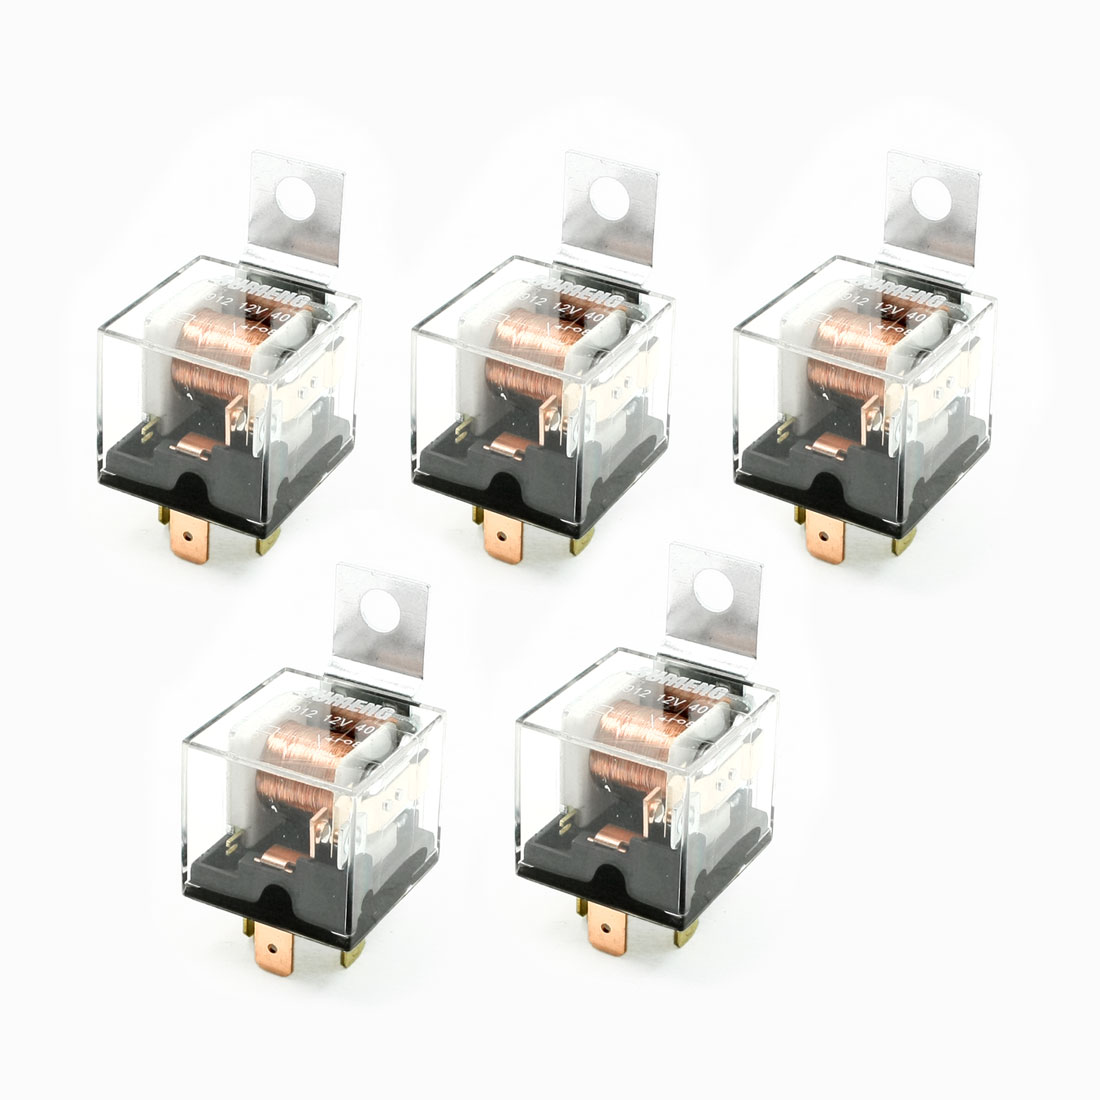 5 Pcs JD1912 Model SPDT 1NO+1NC 4 Pin Car Auto Relay DC 12V 40A